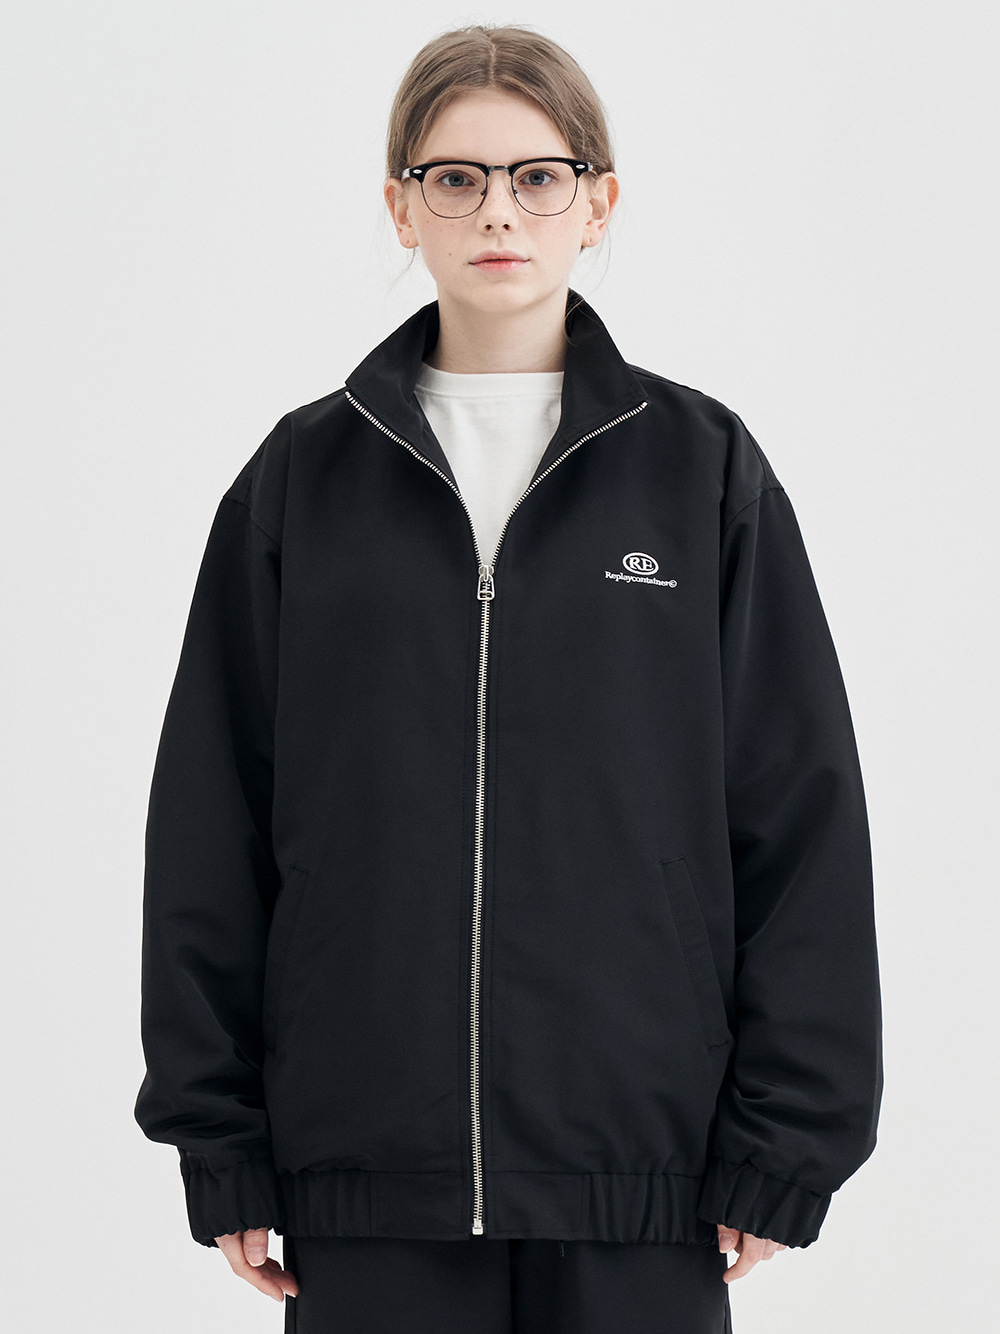 RE capsule logo track jacket (black)